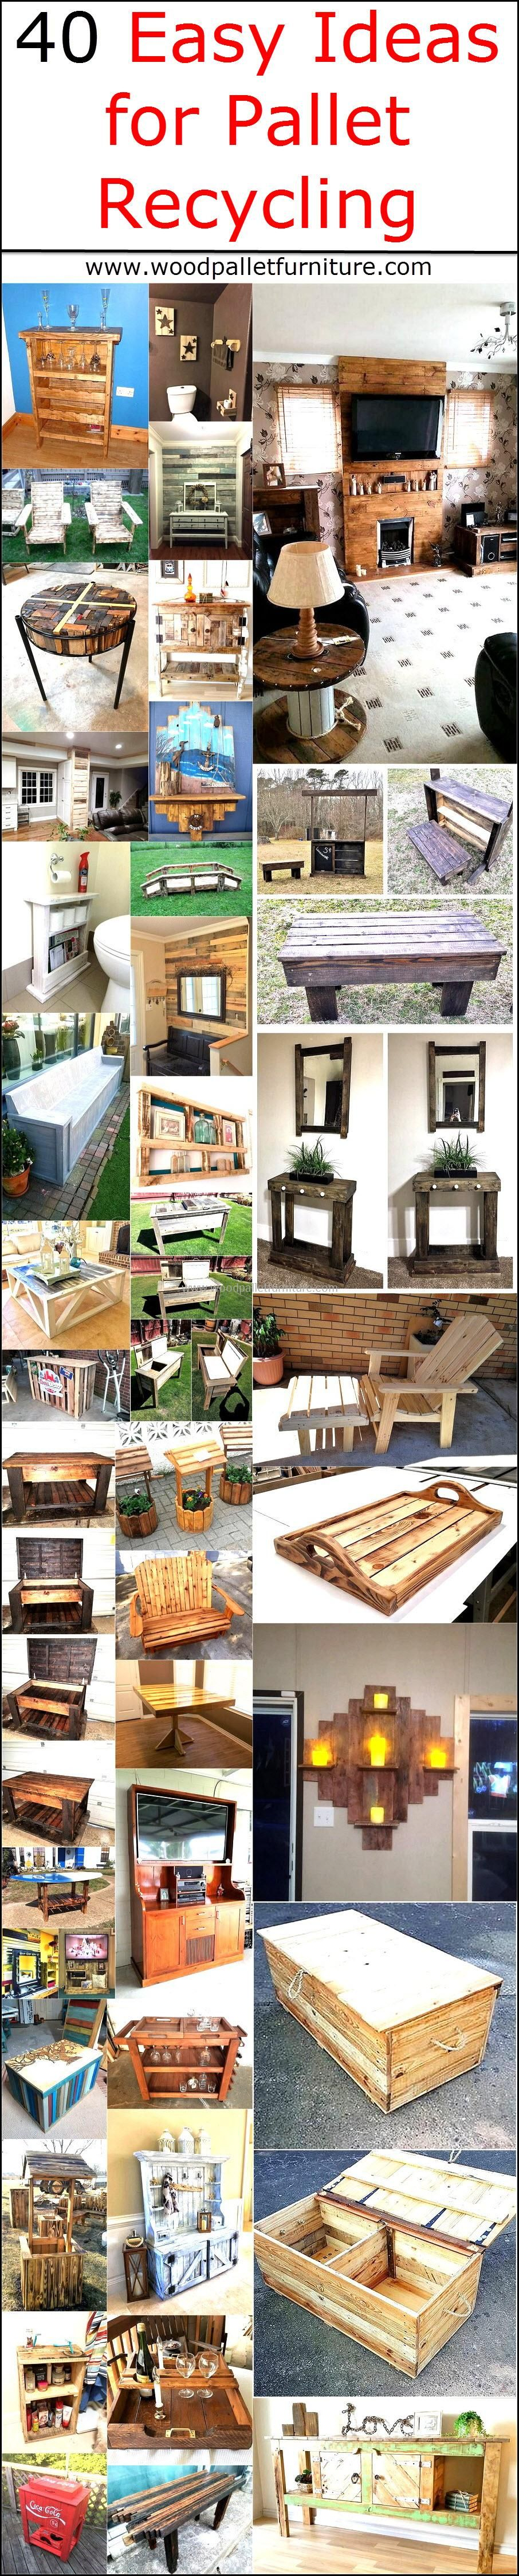 Easy Ideas for Pallet Recycling Pallets Easy and Pallet furniture